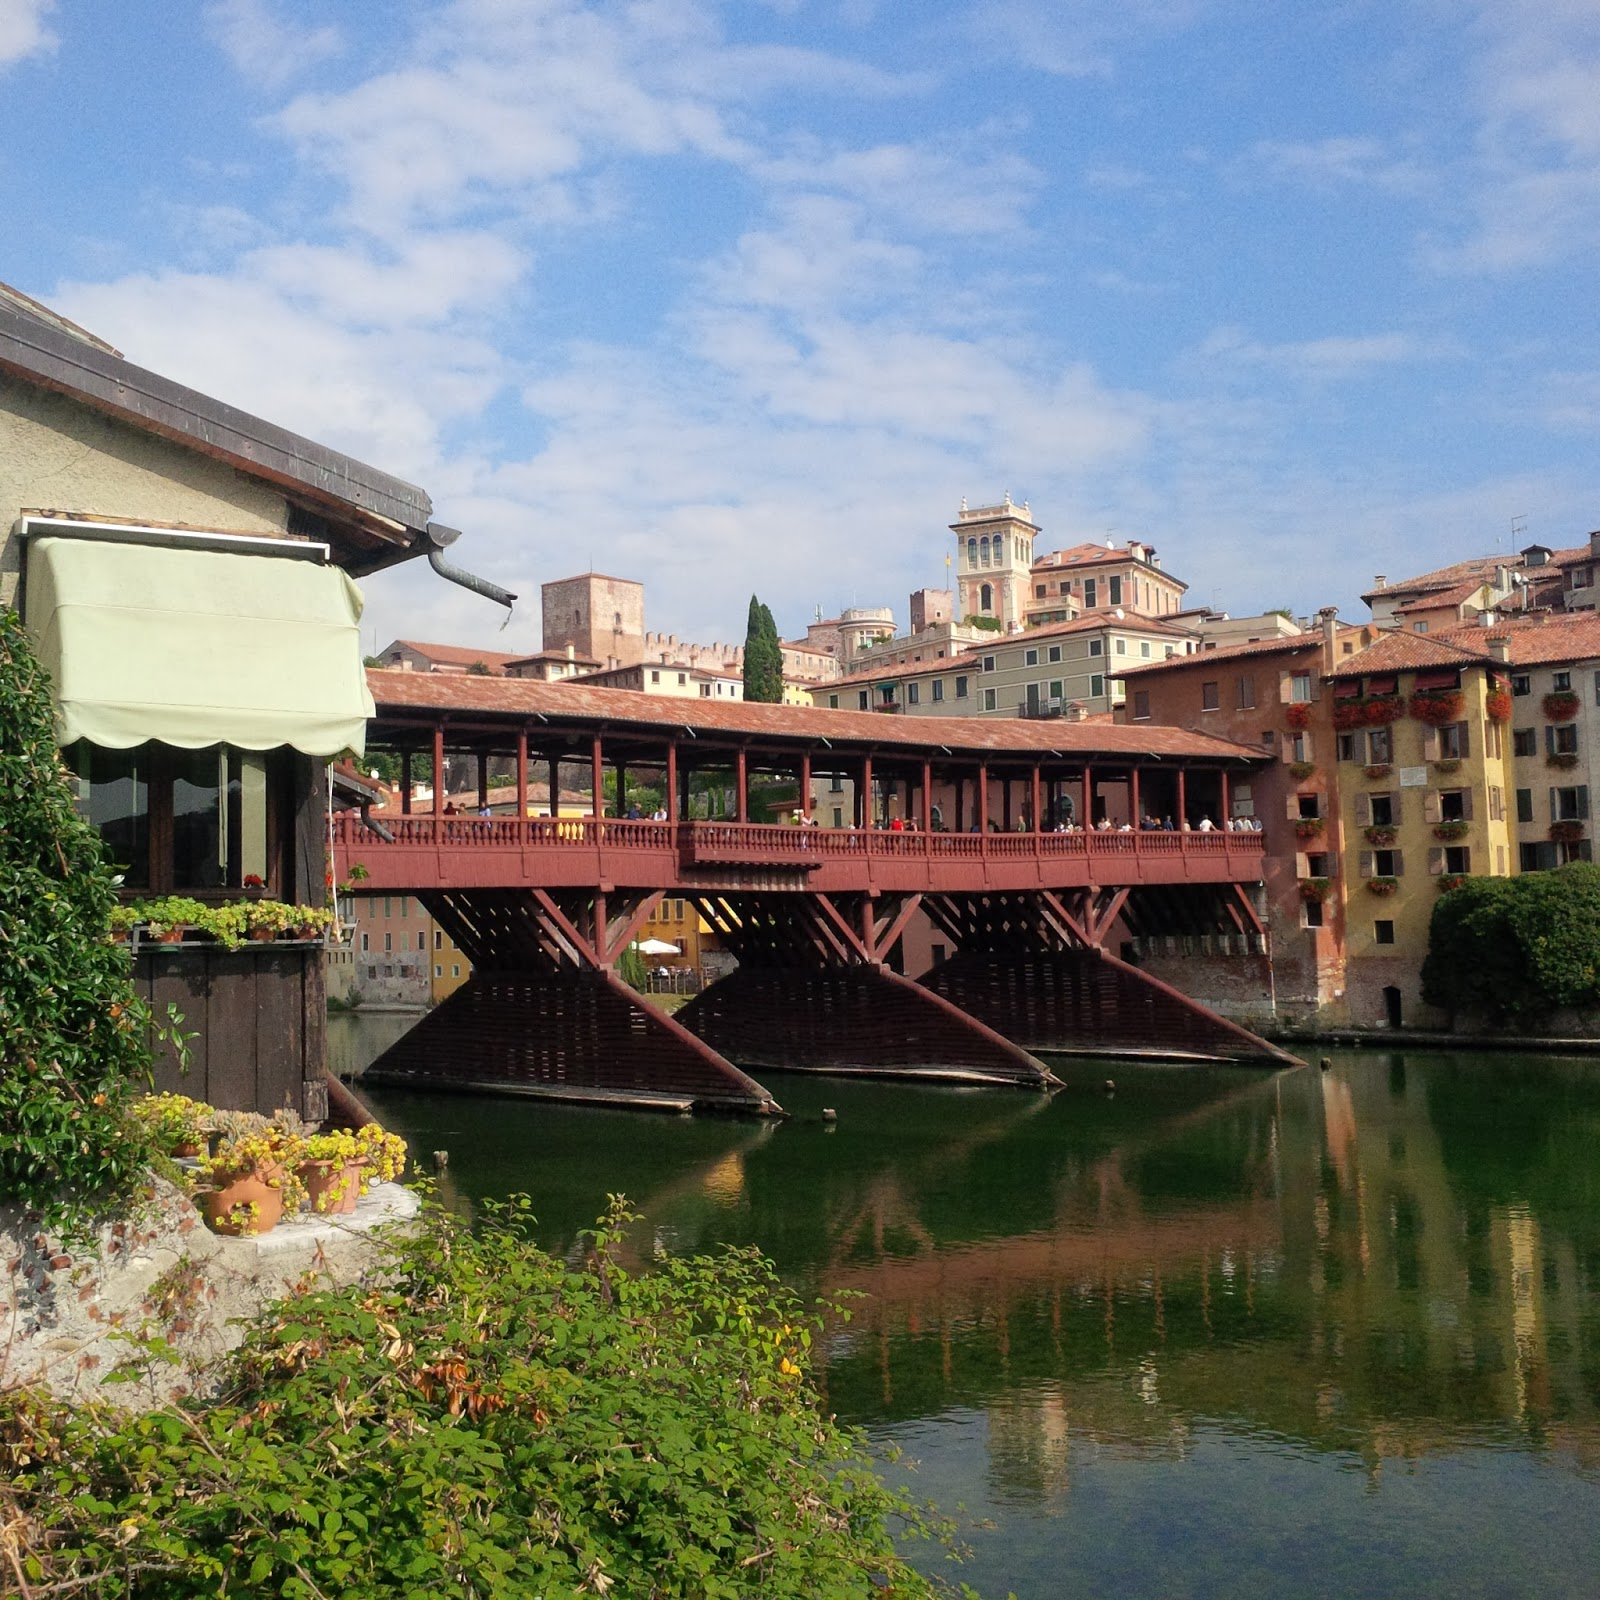 The Alpini Bridge designed by Andrea Palladio in Bassano del Grapa, Veneto, Italy - www.rossiwrites.com